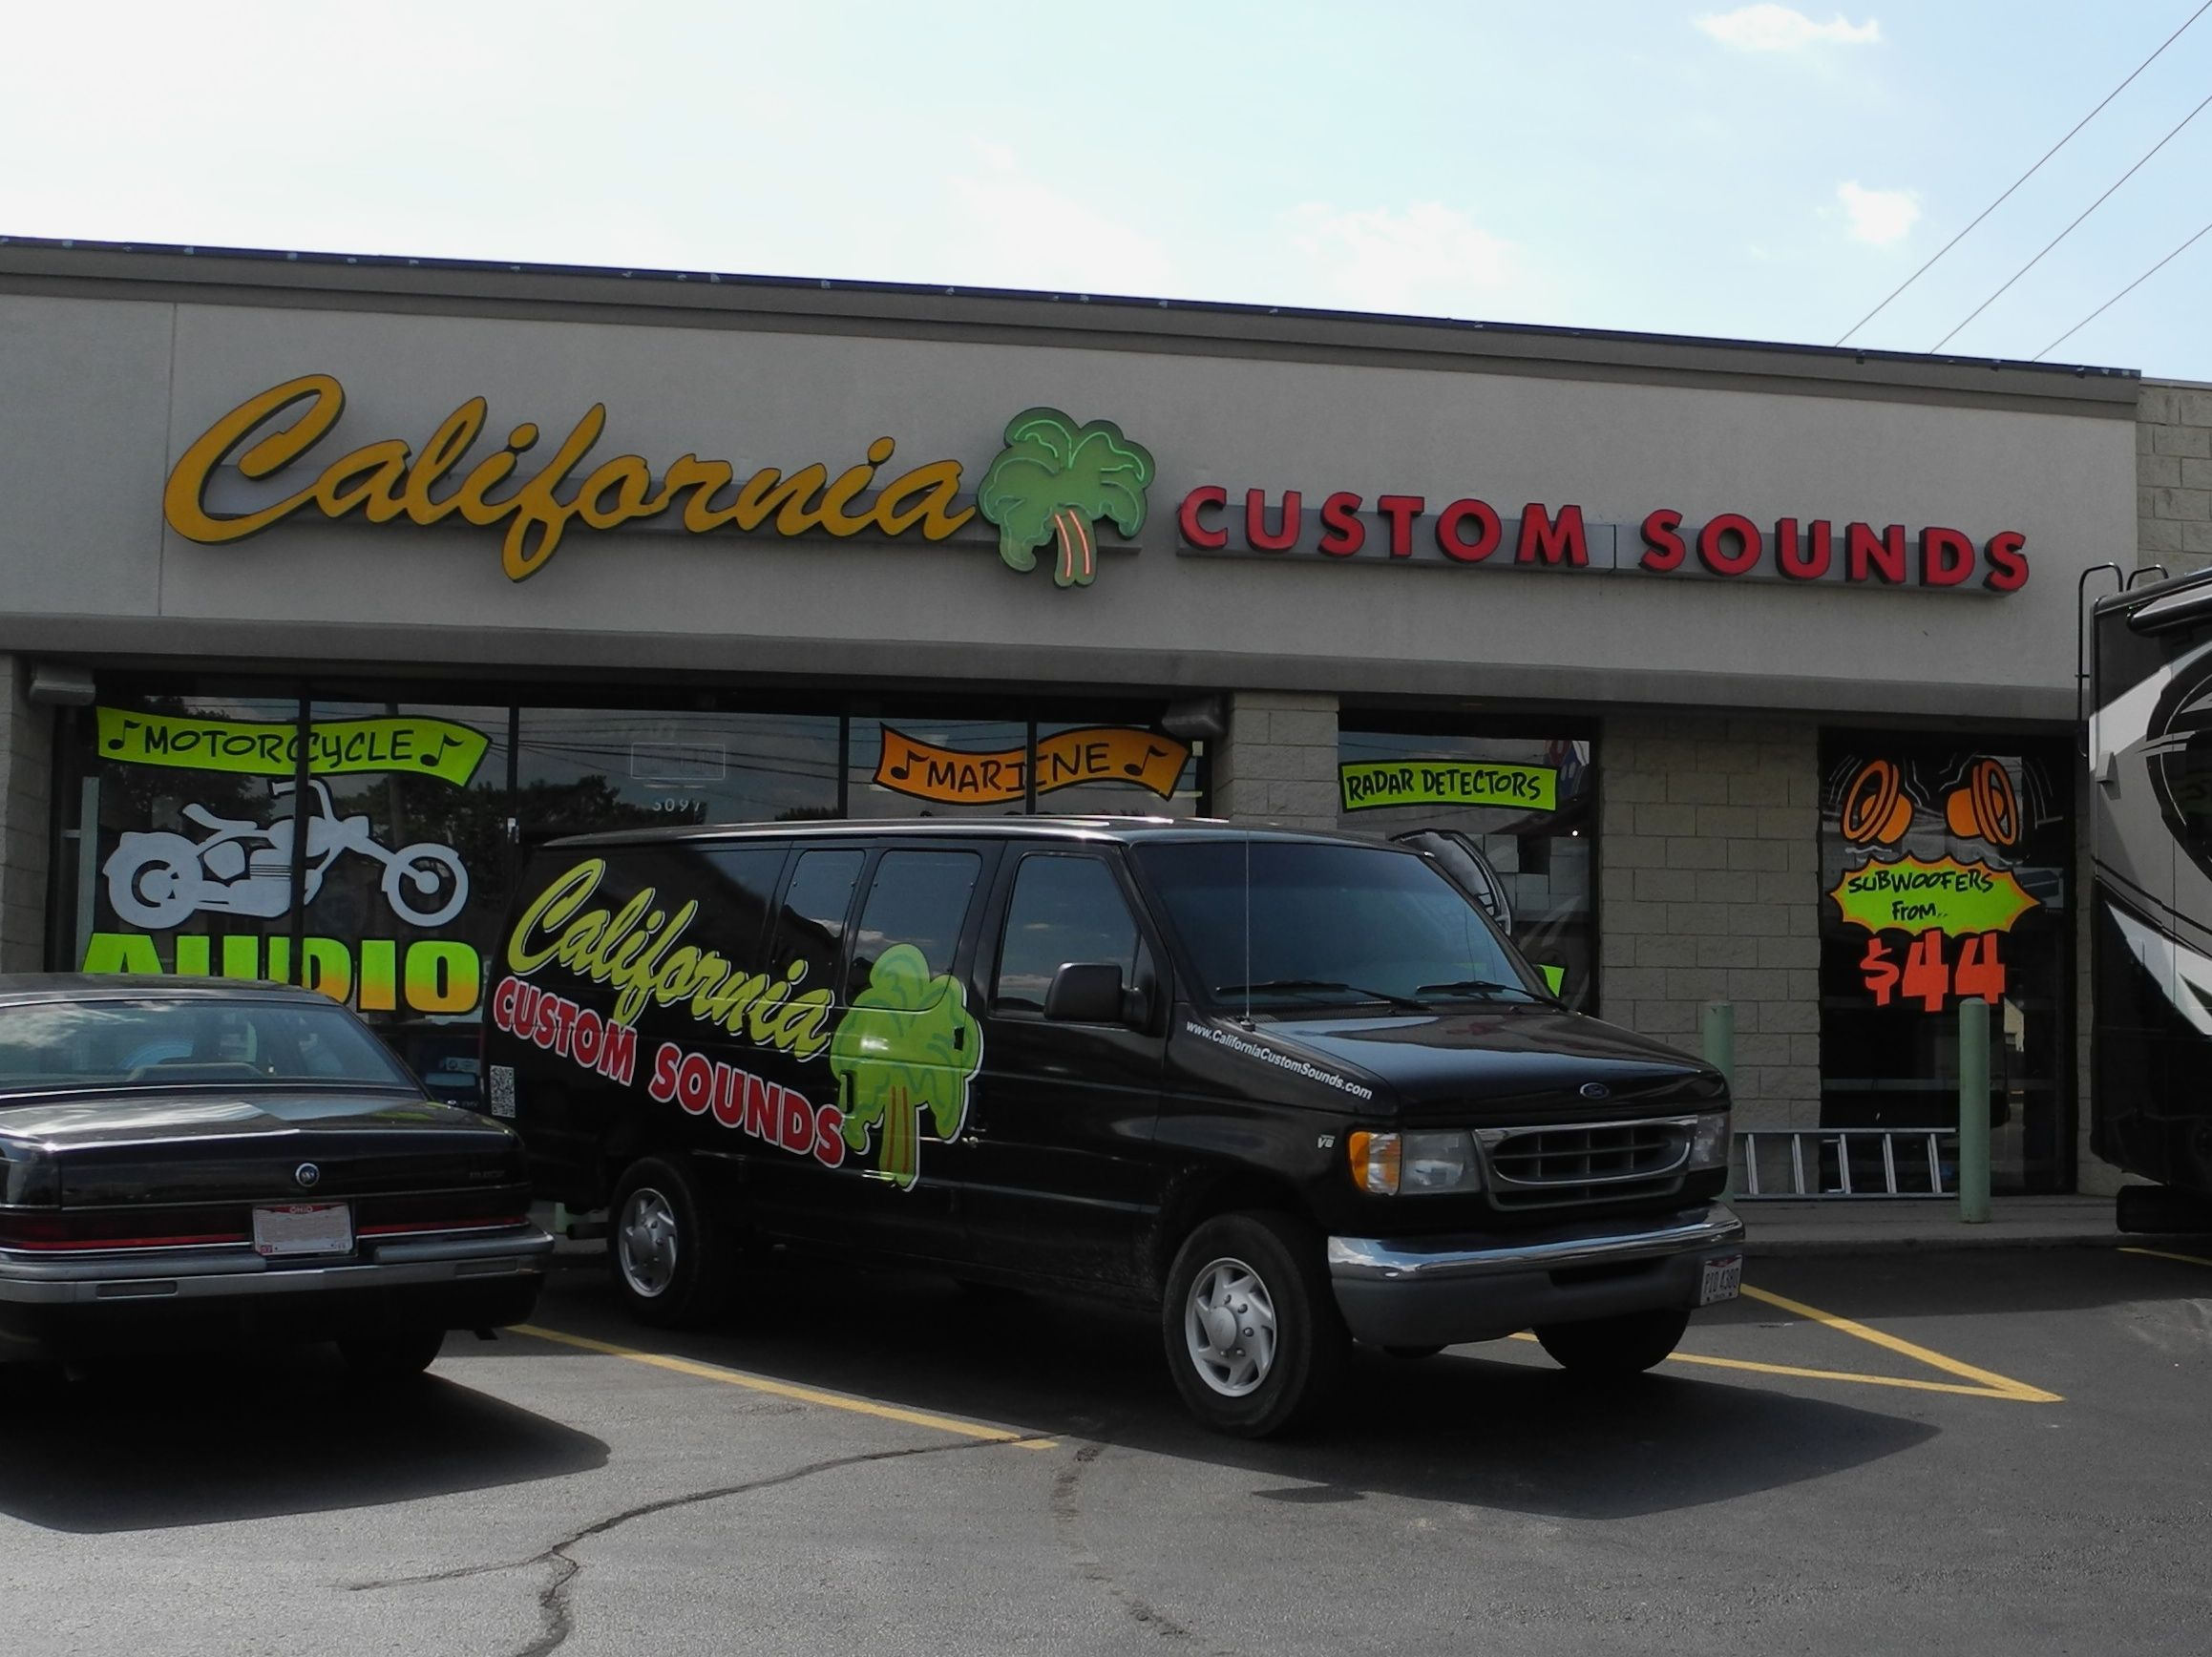 Are you highly-motivated, experienced in car audio, and looking for a new opportunity with stability and growth potential? Then we want to hear from you! California Custom Sounds is growing, and we are currently seeking experienced installation technicians and sales consultants! Visit any of our three locations (Beavercreek, North Dixie/Stereo-In-Dash, and West Carrollton/Moraine) to complete an application. (No phone calls, please!)